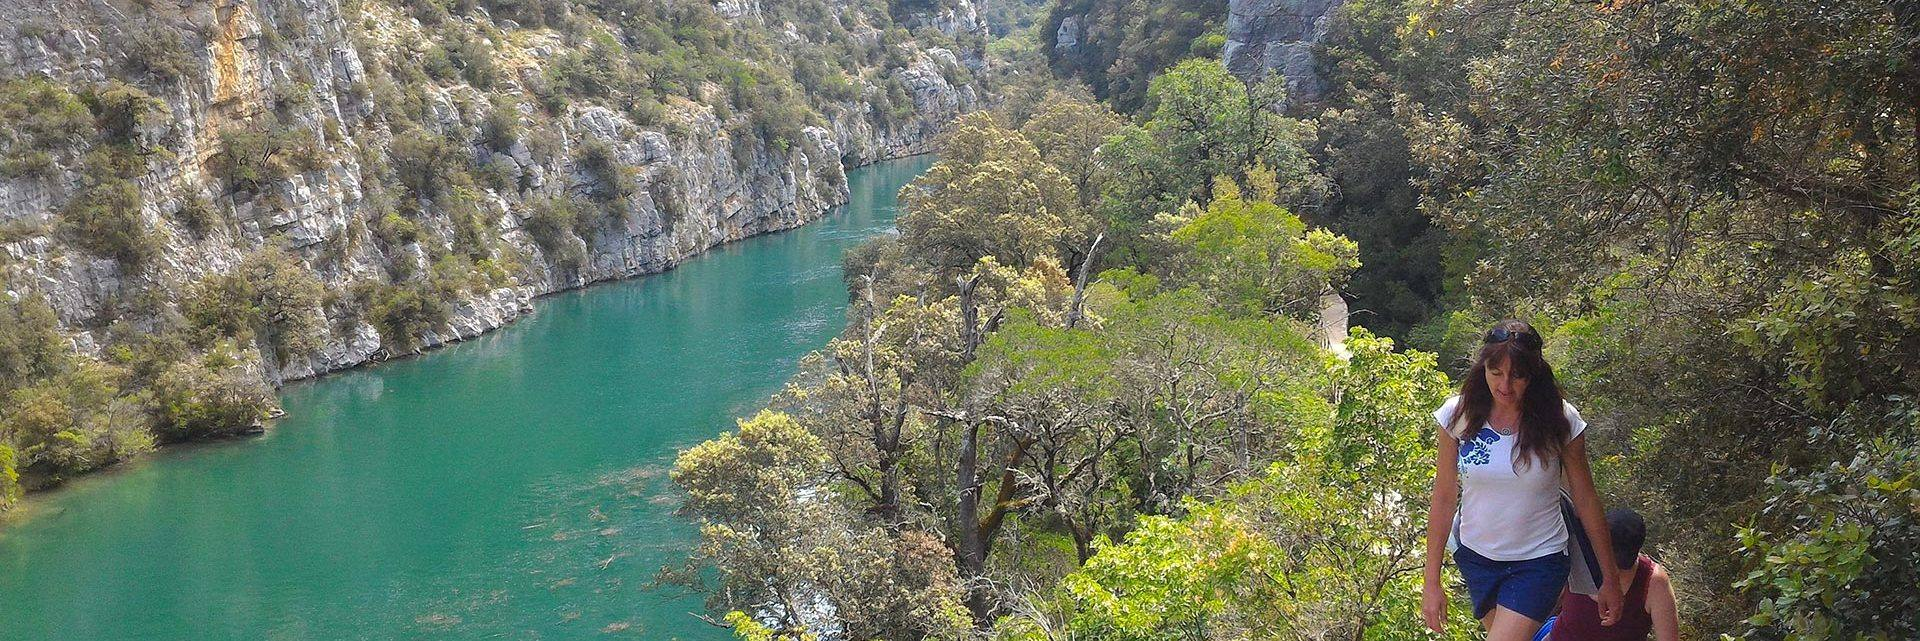 Hiking in the Verdon Gorges